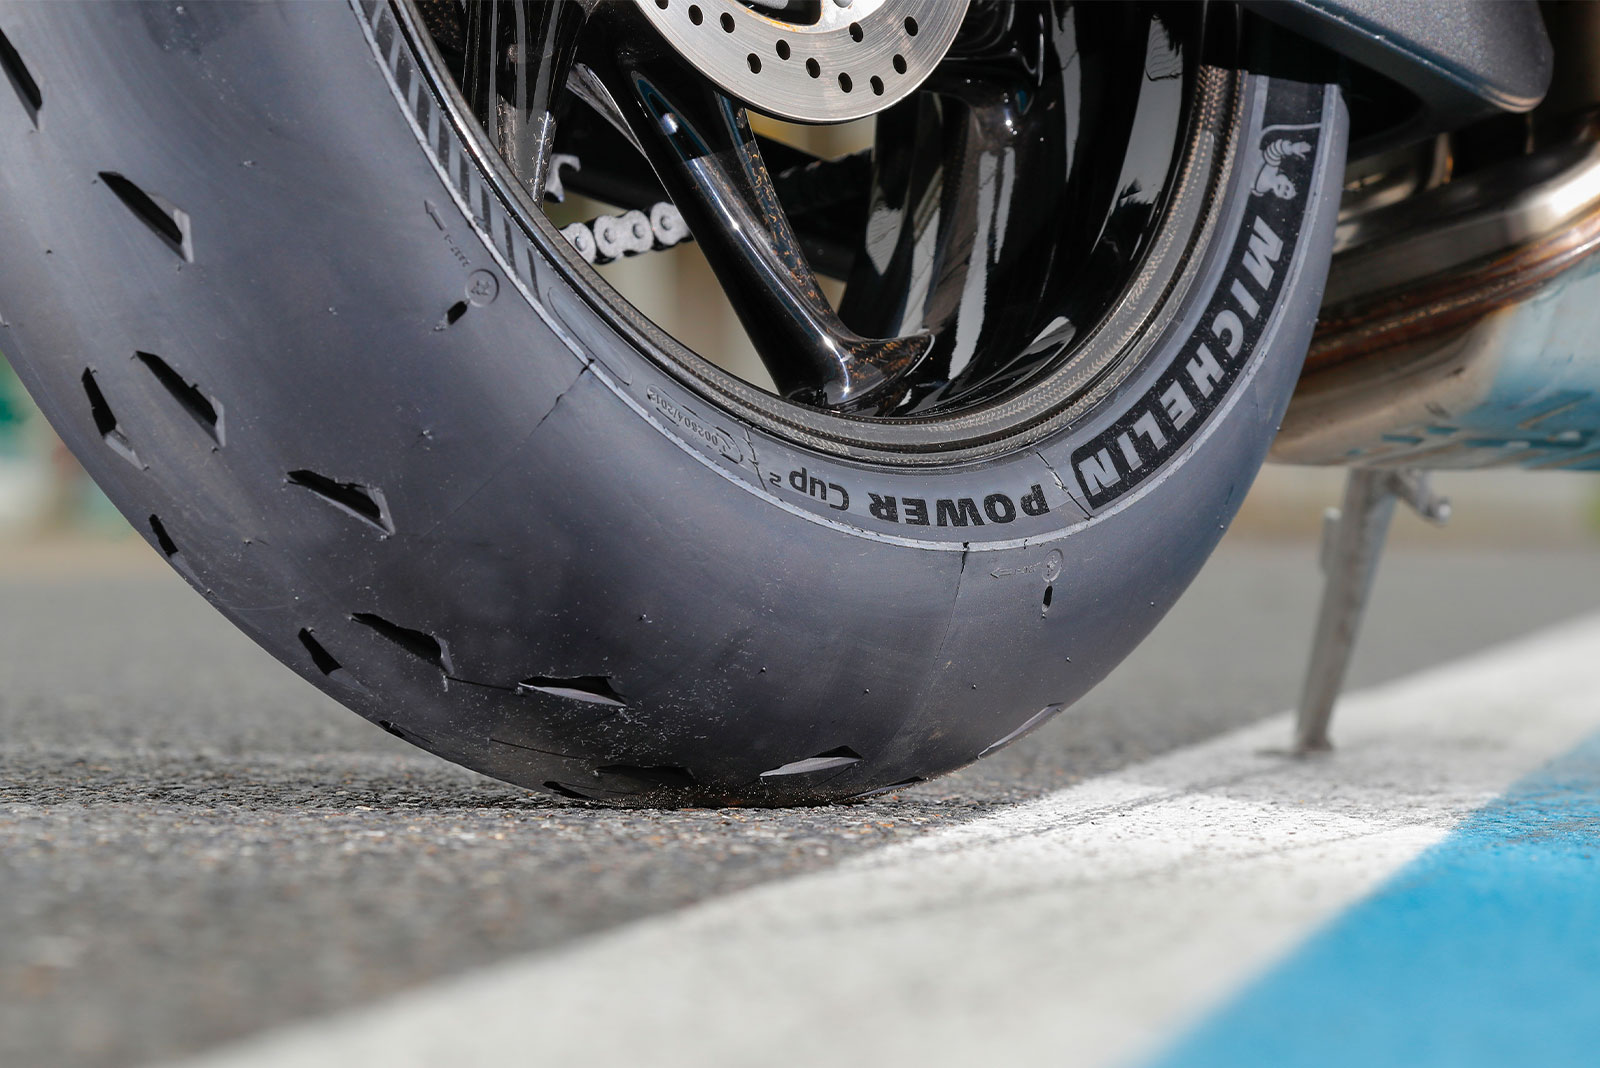 michelin_powercup2_201029_01.jpg